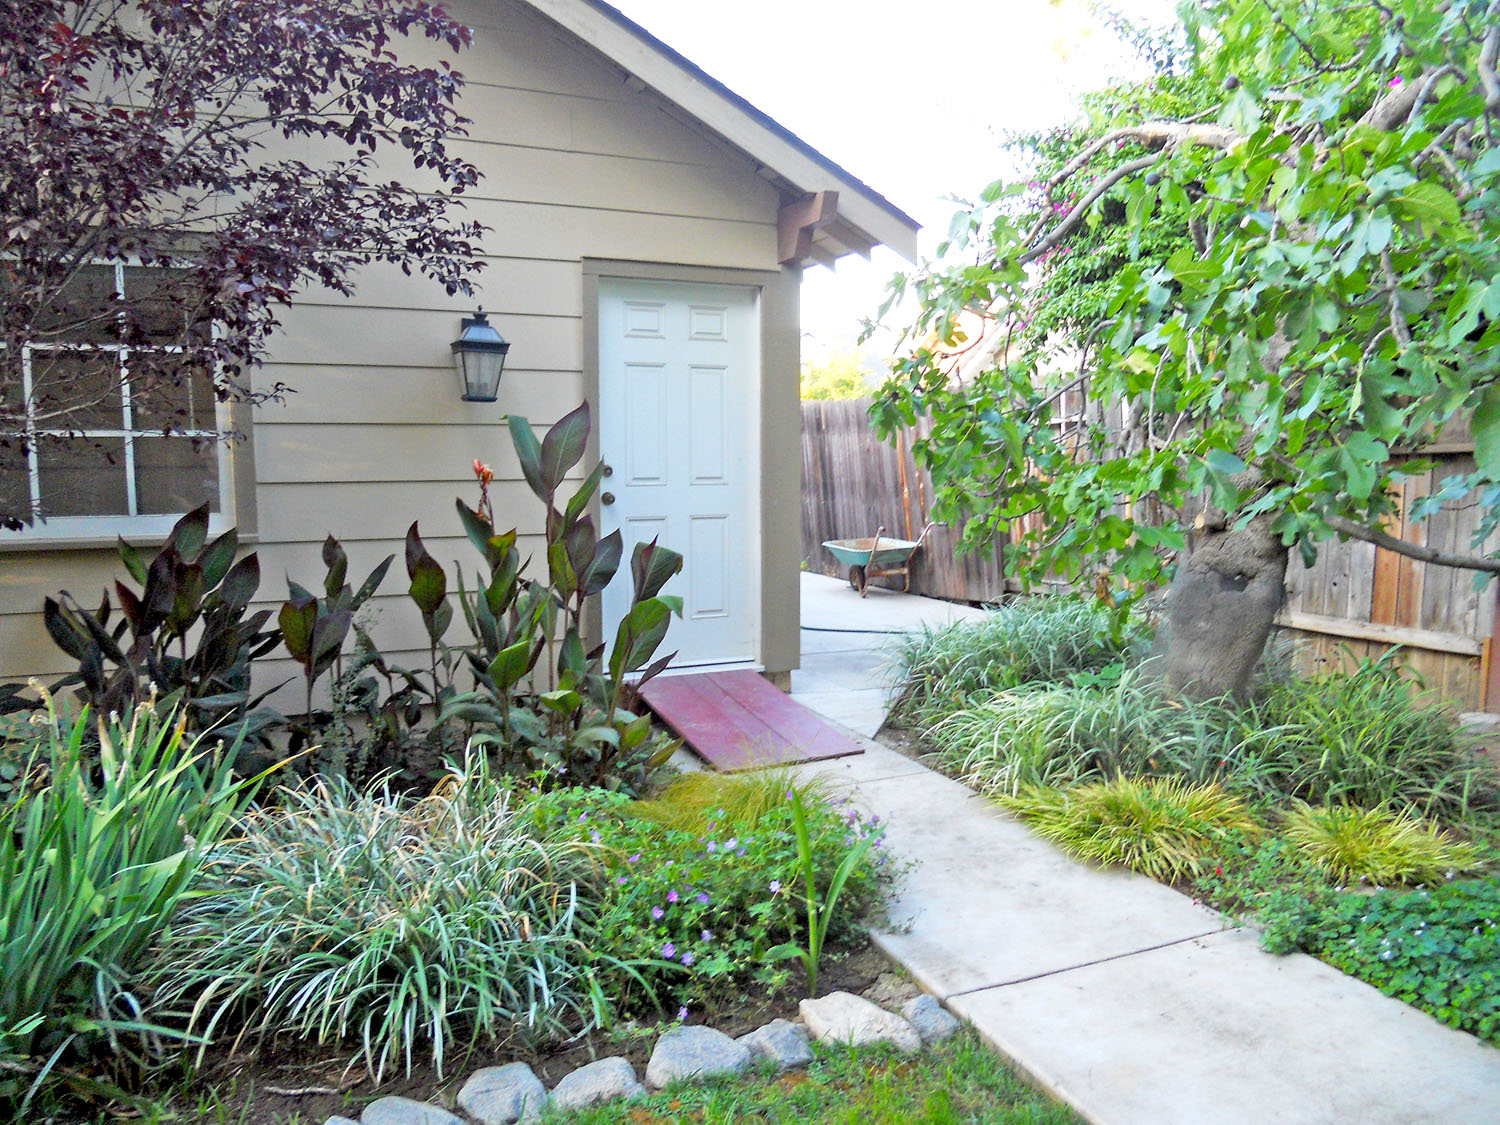 Another view of garage with lush landscaping, mature and producing fig tree, and cemented side yard which could be utilized for boat or small RV parking.